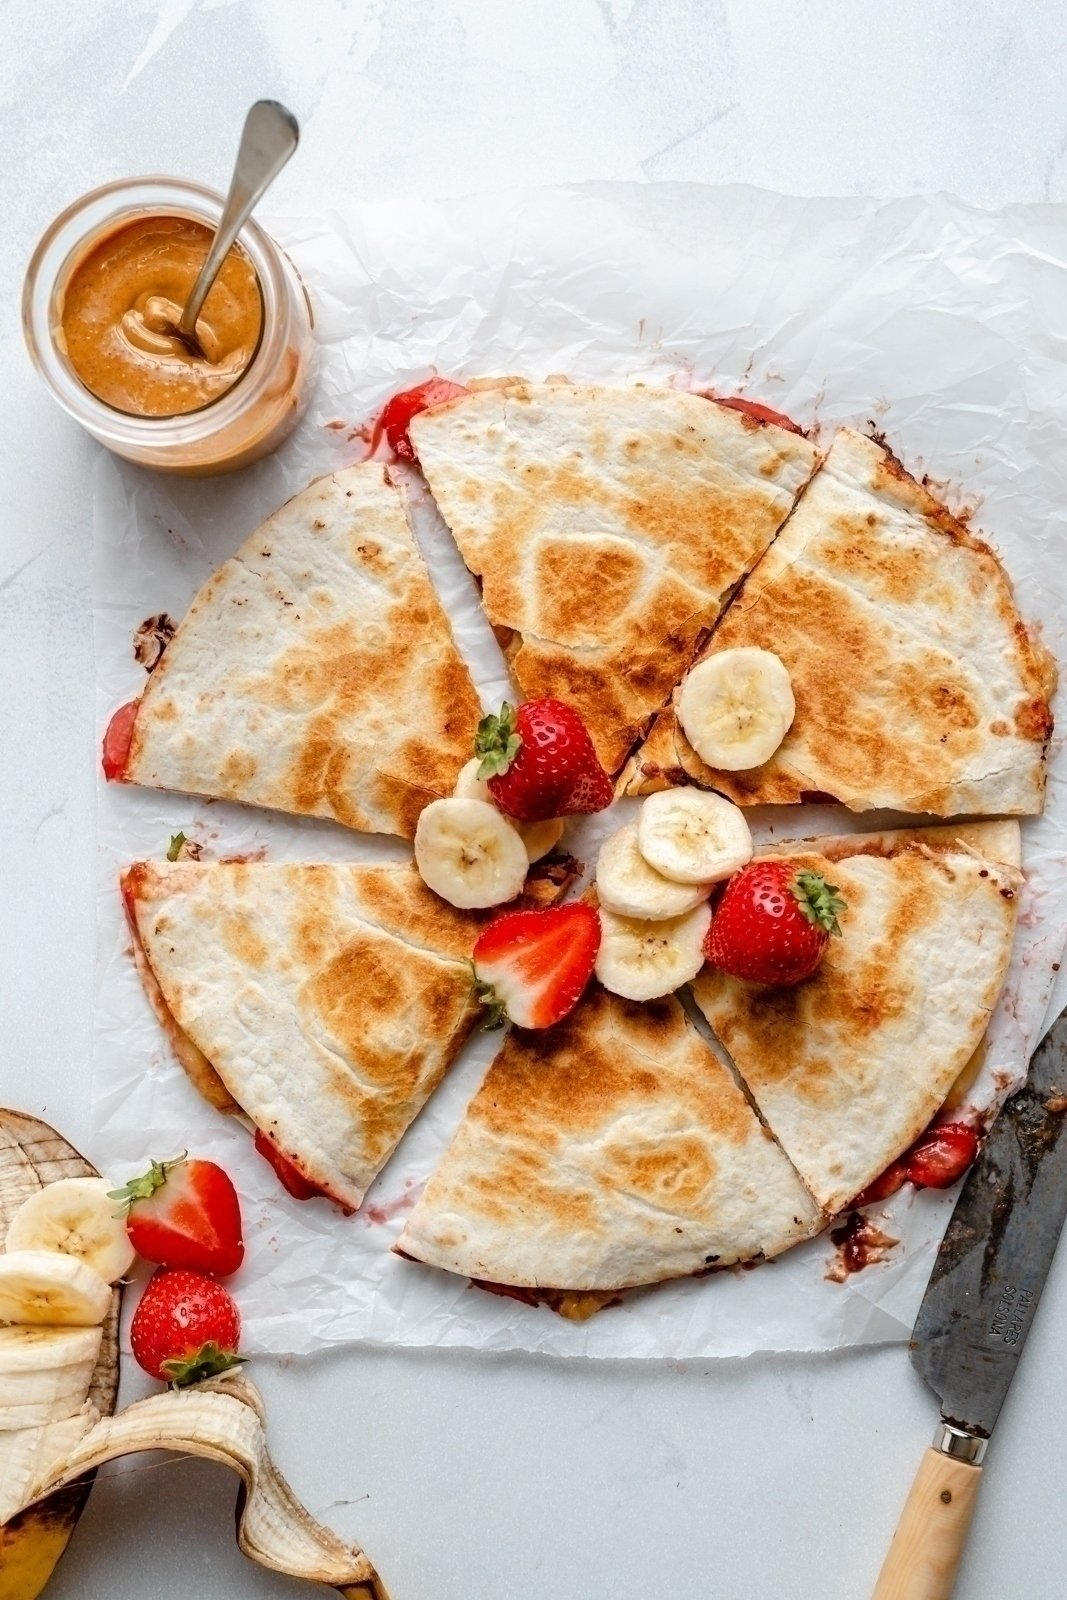 healthy peanut butter strawberry banana quesadilla sliced on parchment paper